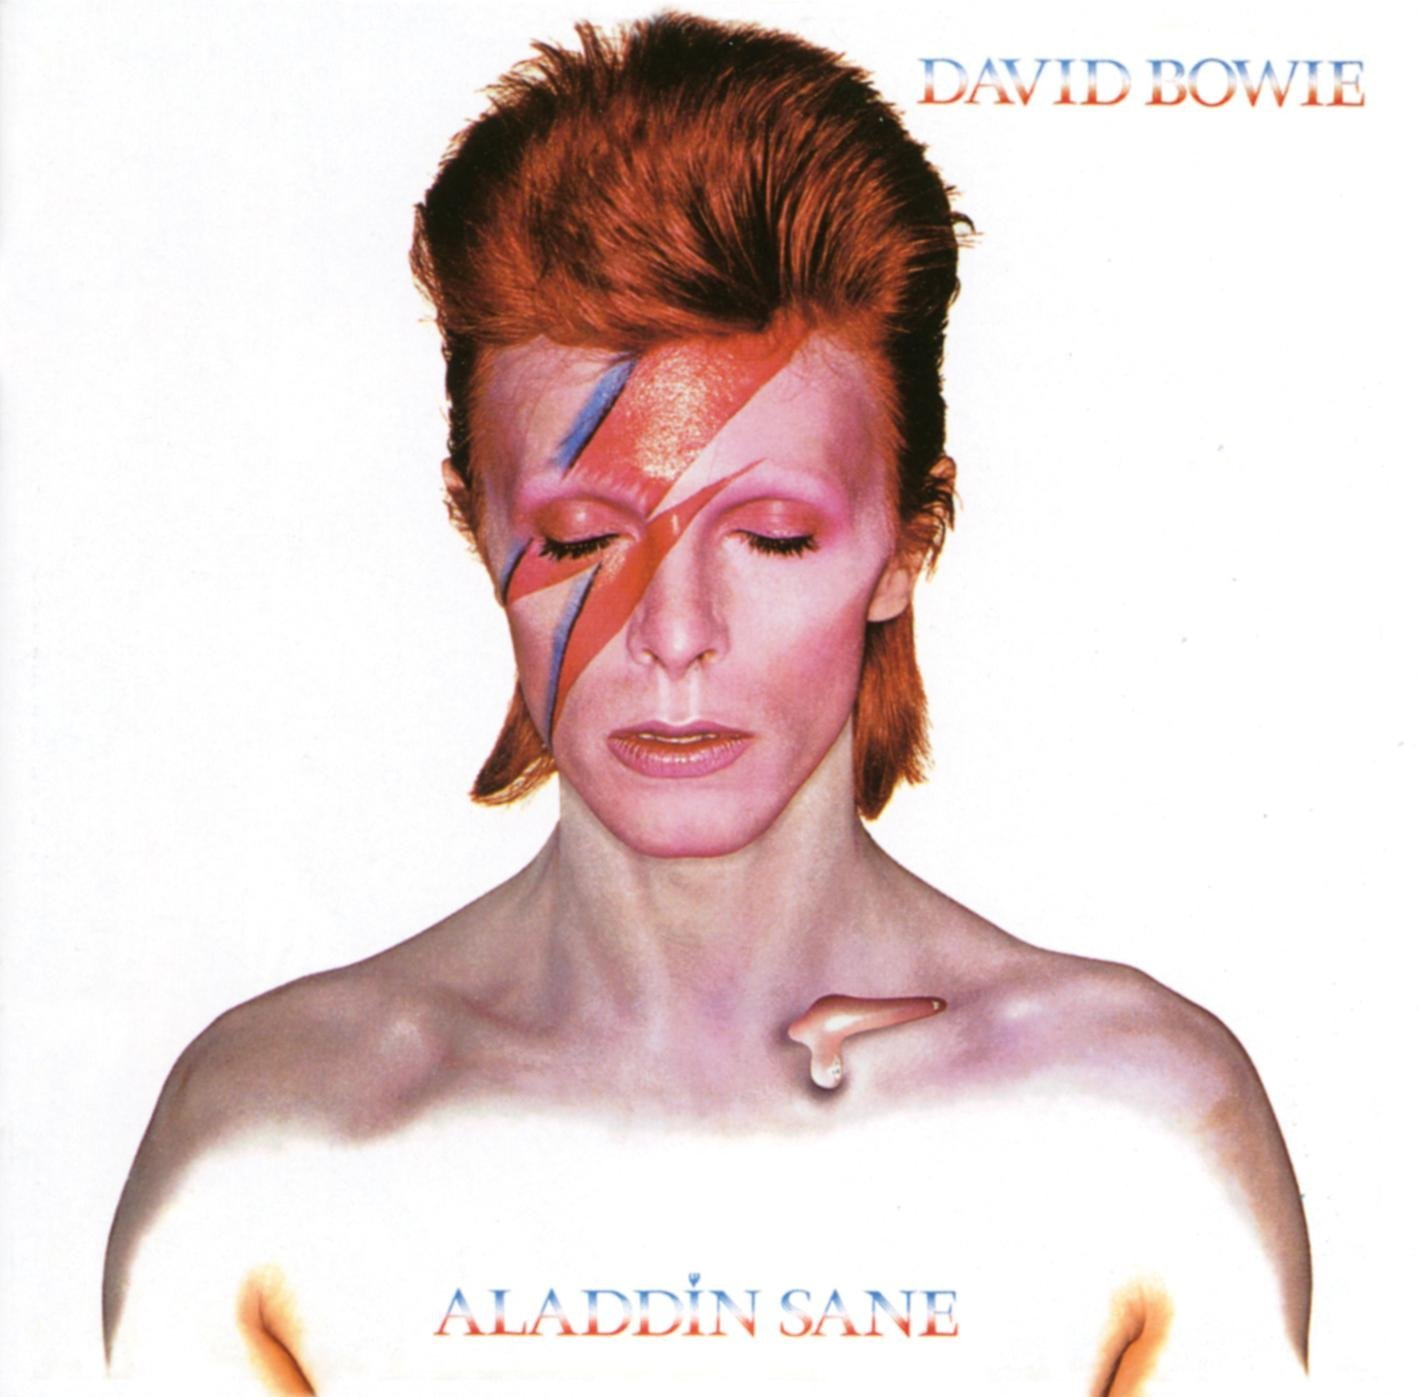 David Bowie – Aladdin Sane – album cover